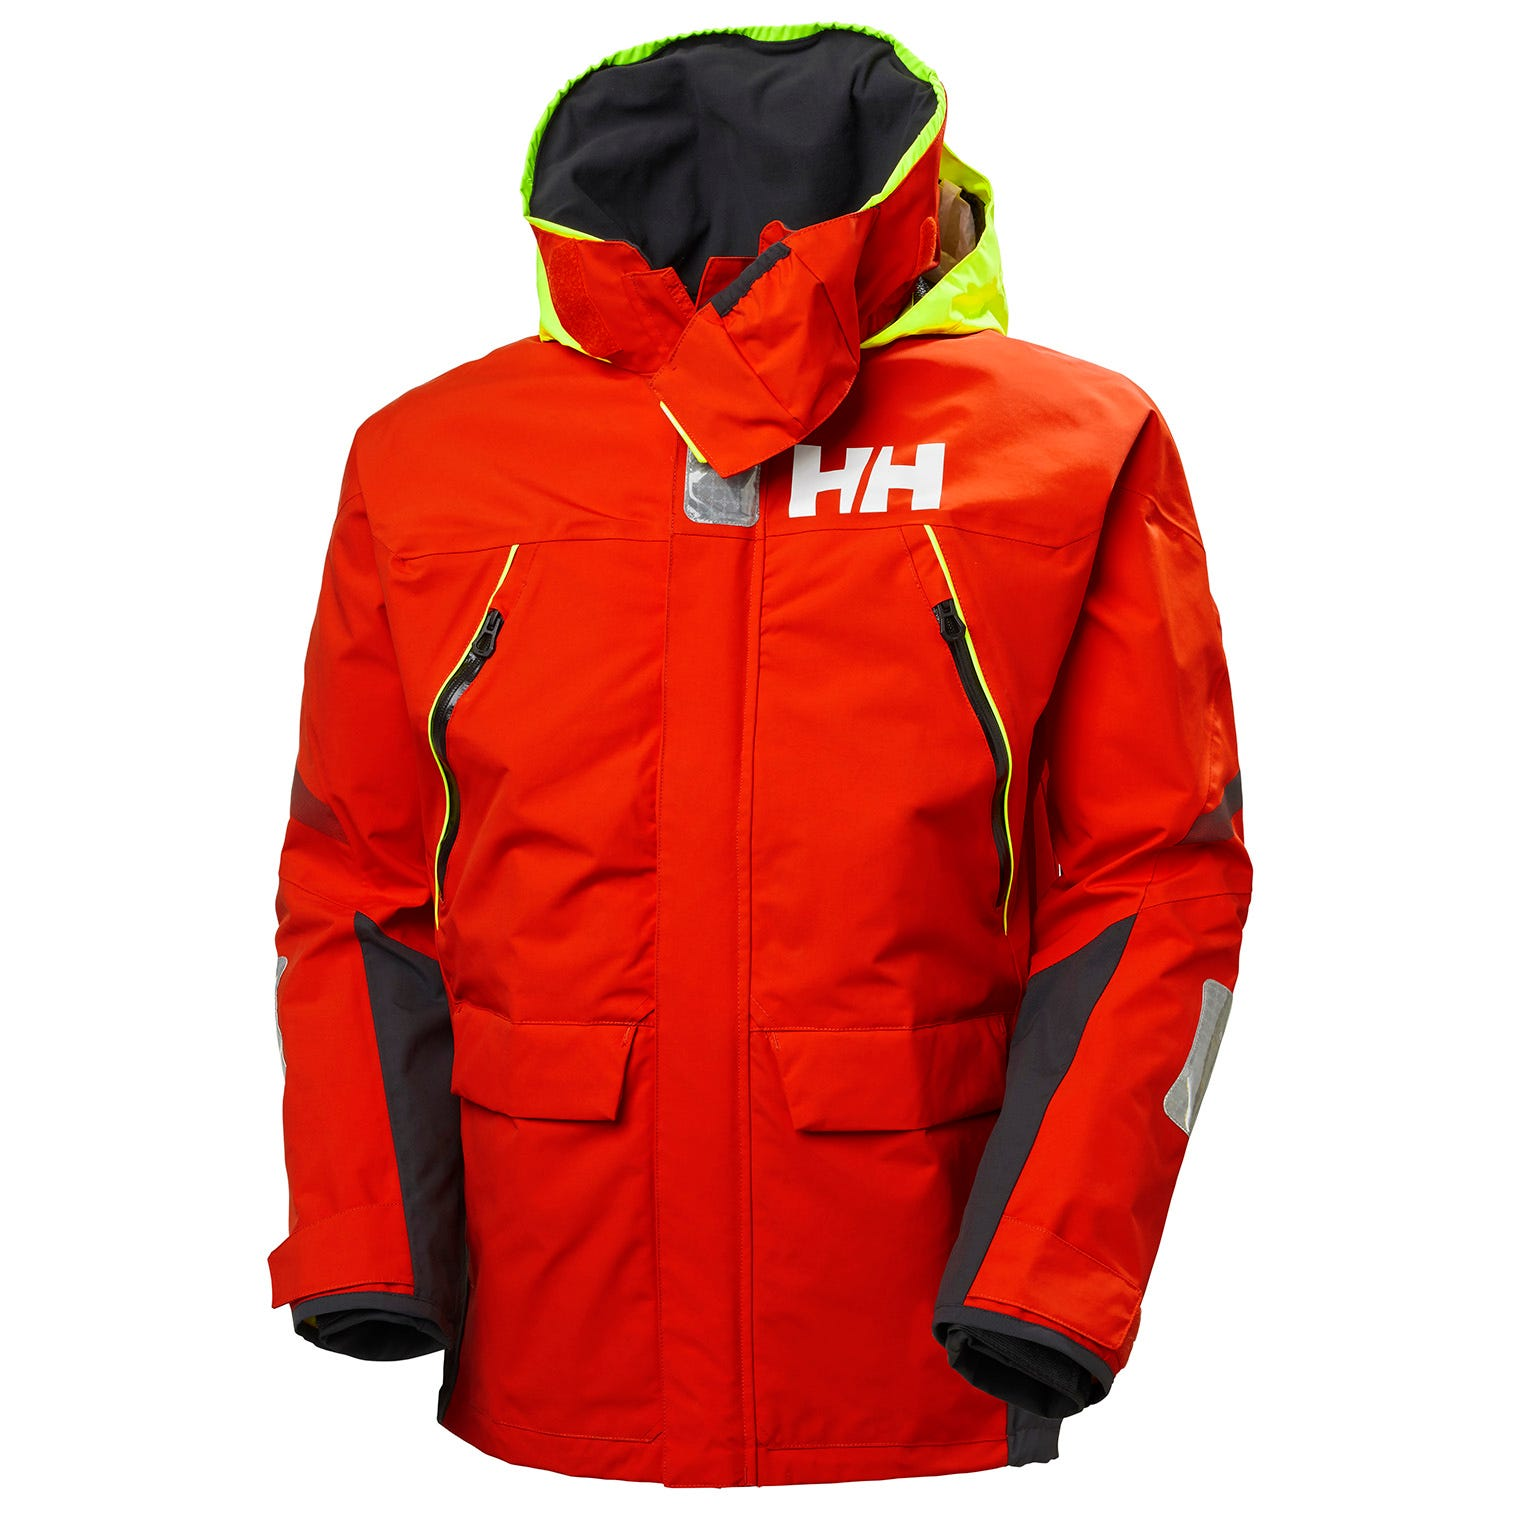 Helly Hansen Mens Sailing Jacket Red L